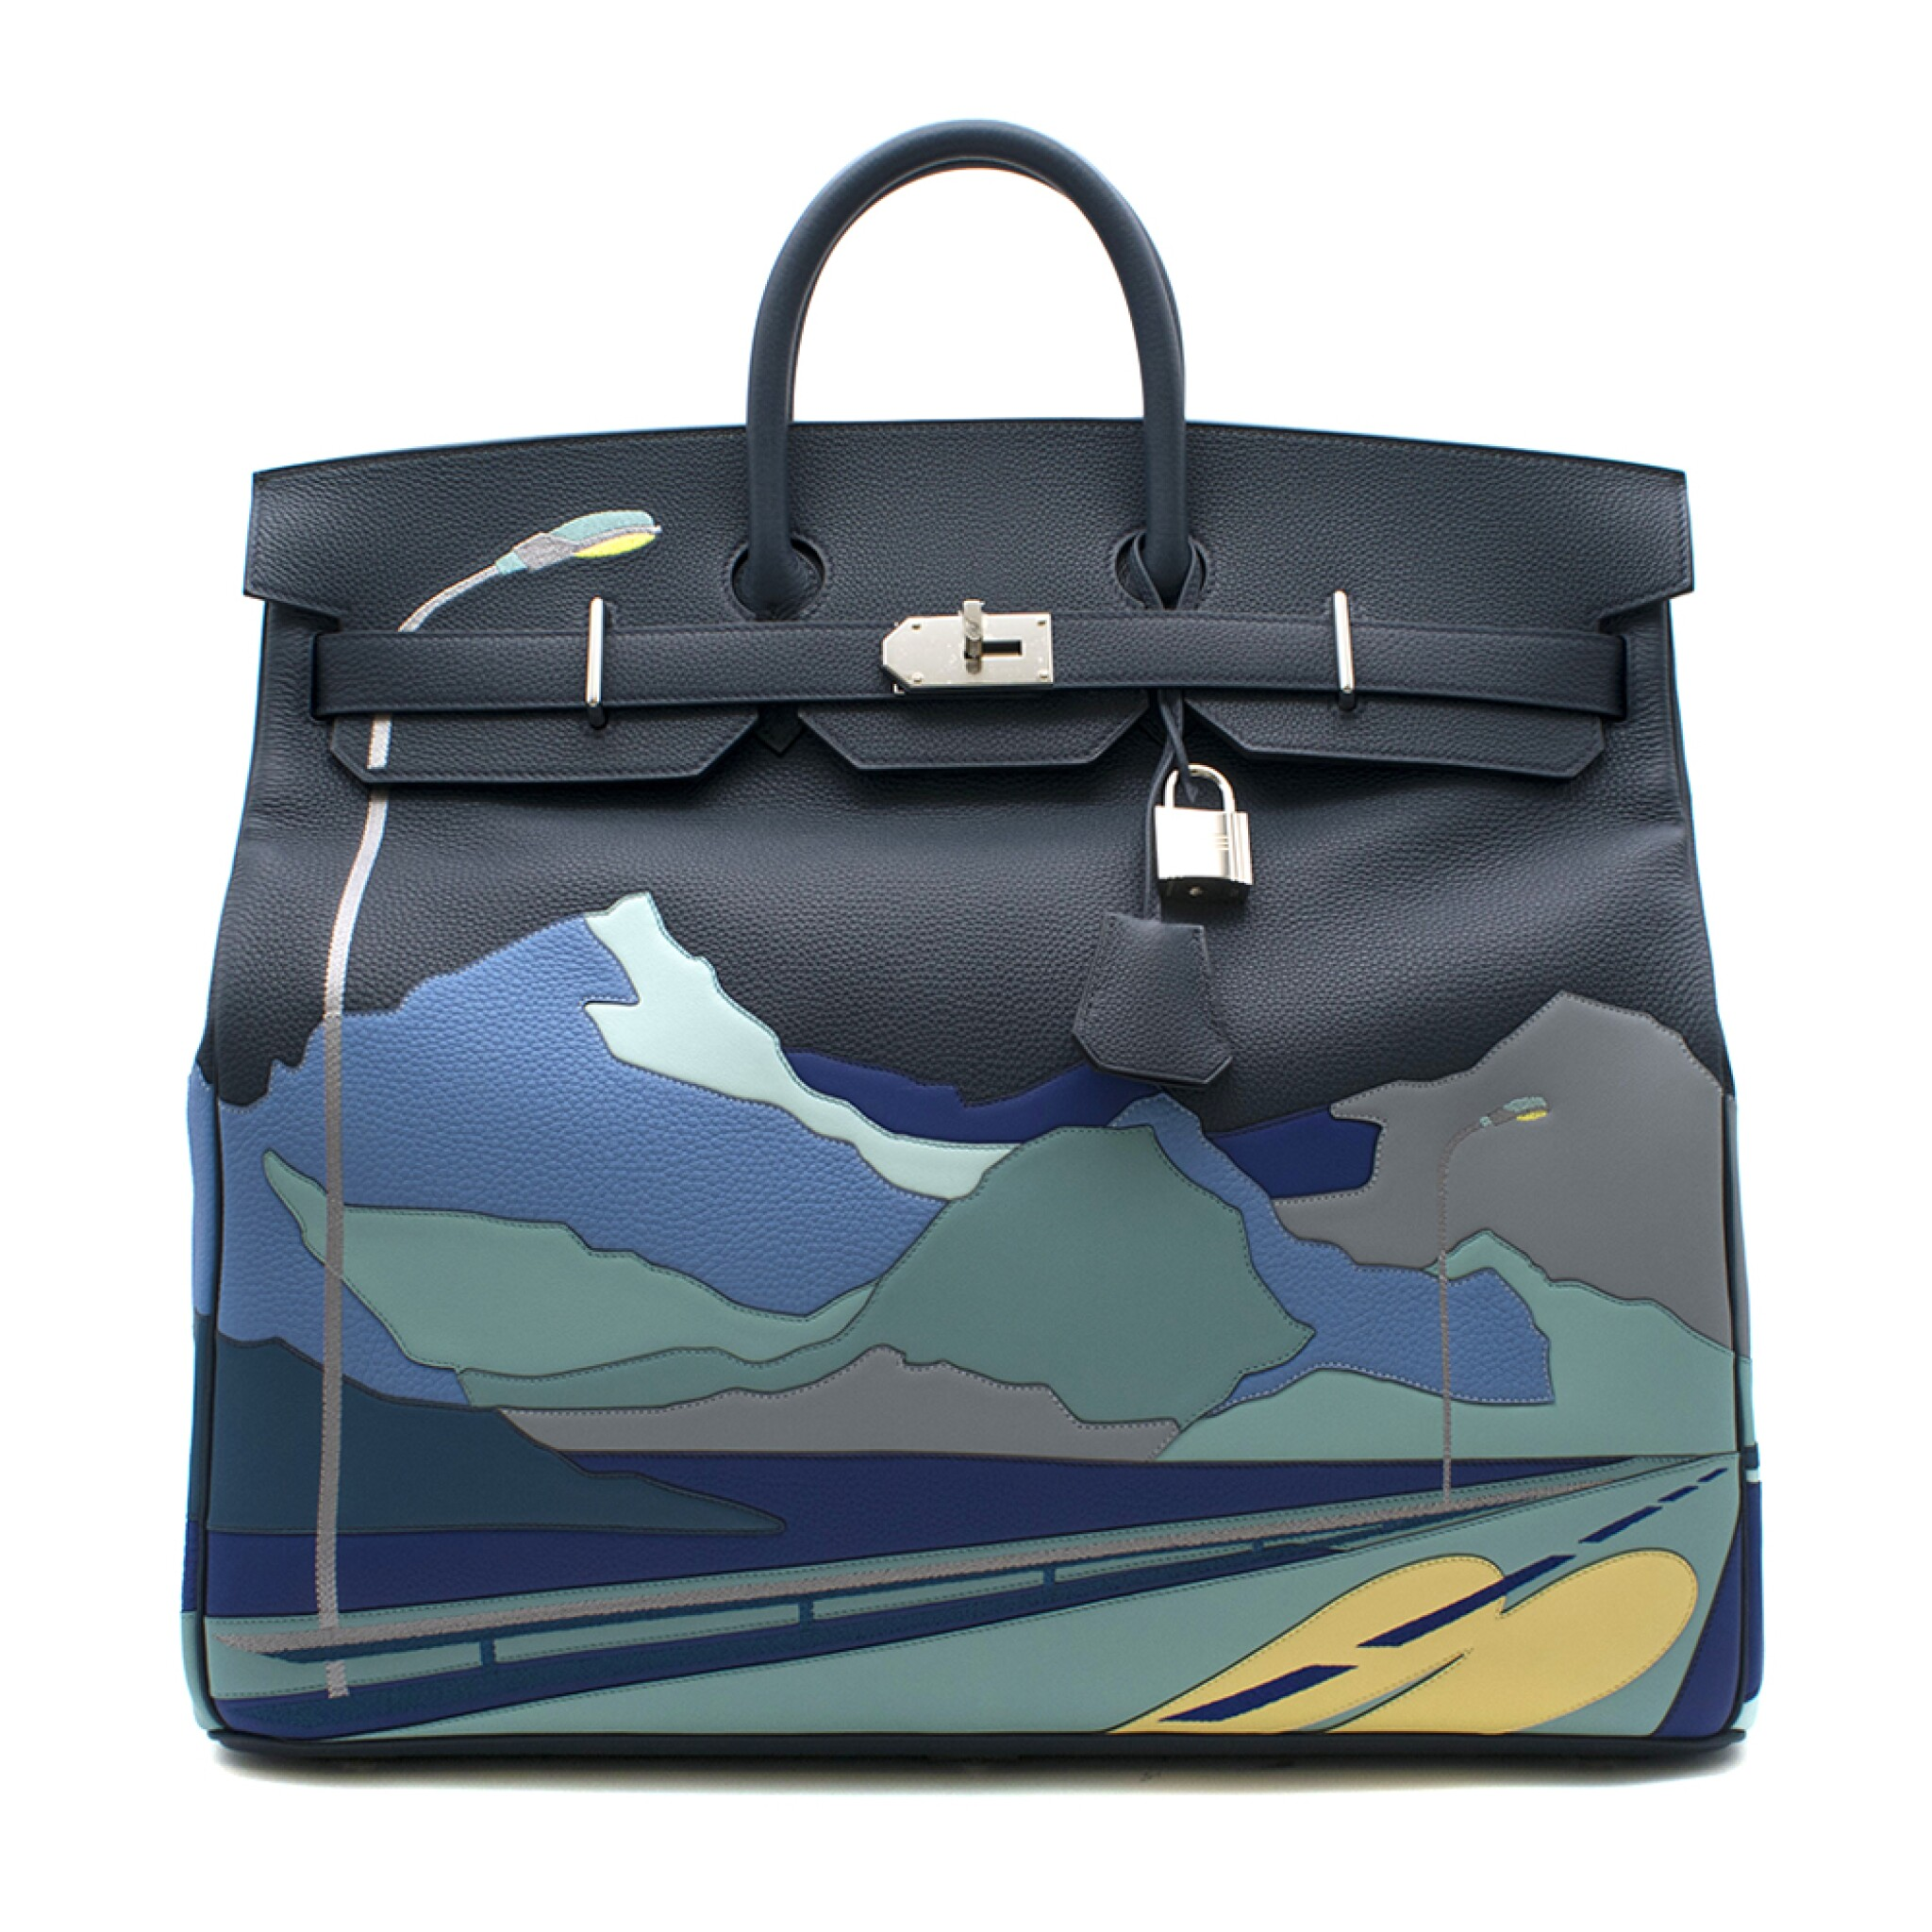 View full screen - View 1 of Lot 108. HERMÈS   BLUE DE PRUSSE LIMITED EDITION ENDLESS ROAD BIRKIN 50 HAUTE Á COURROIERS IN TOGO, SWIFT AND CLEMENCE LEATHER WITH PALLADIUM HARDWARE, 2019.